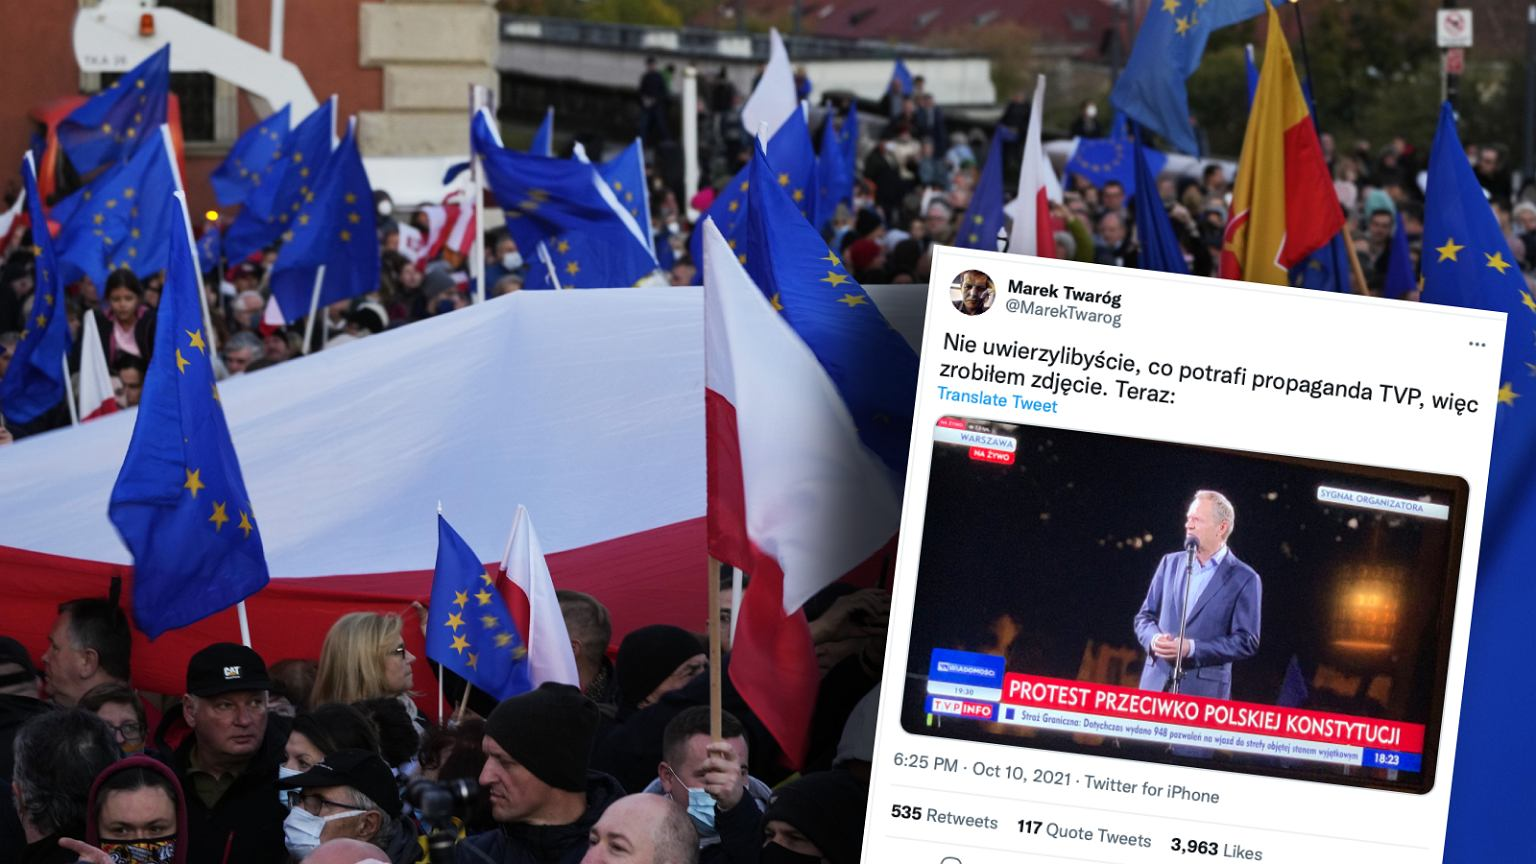 Donald Tusk during a demonstration in Fort Square on 10.10.2021